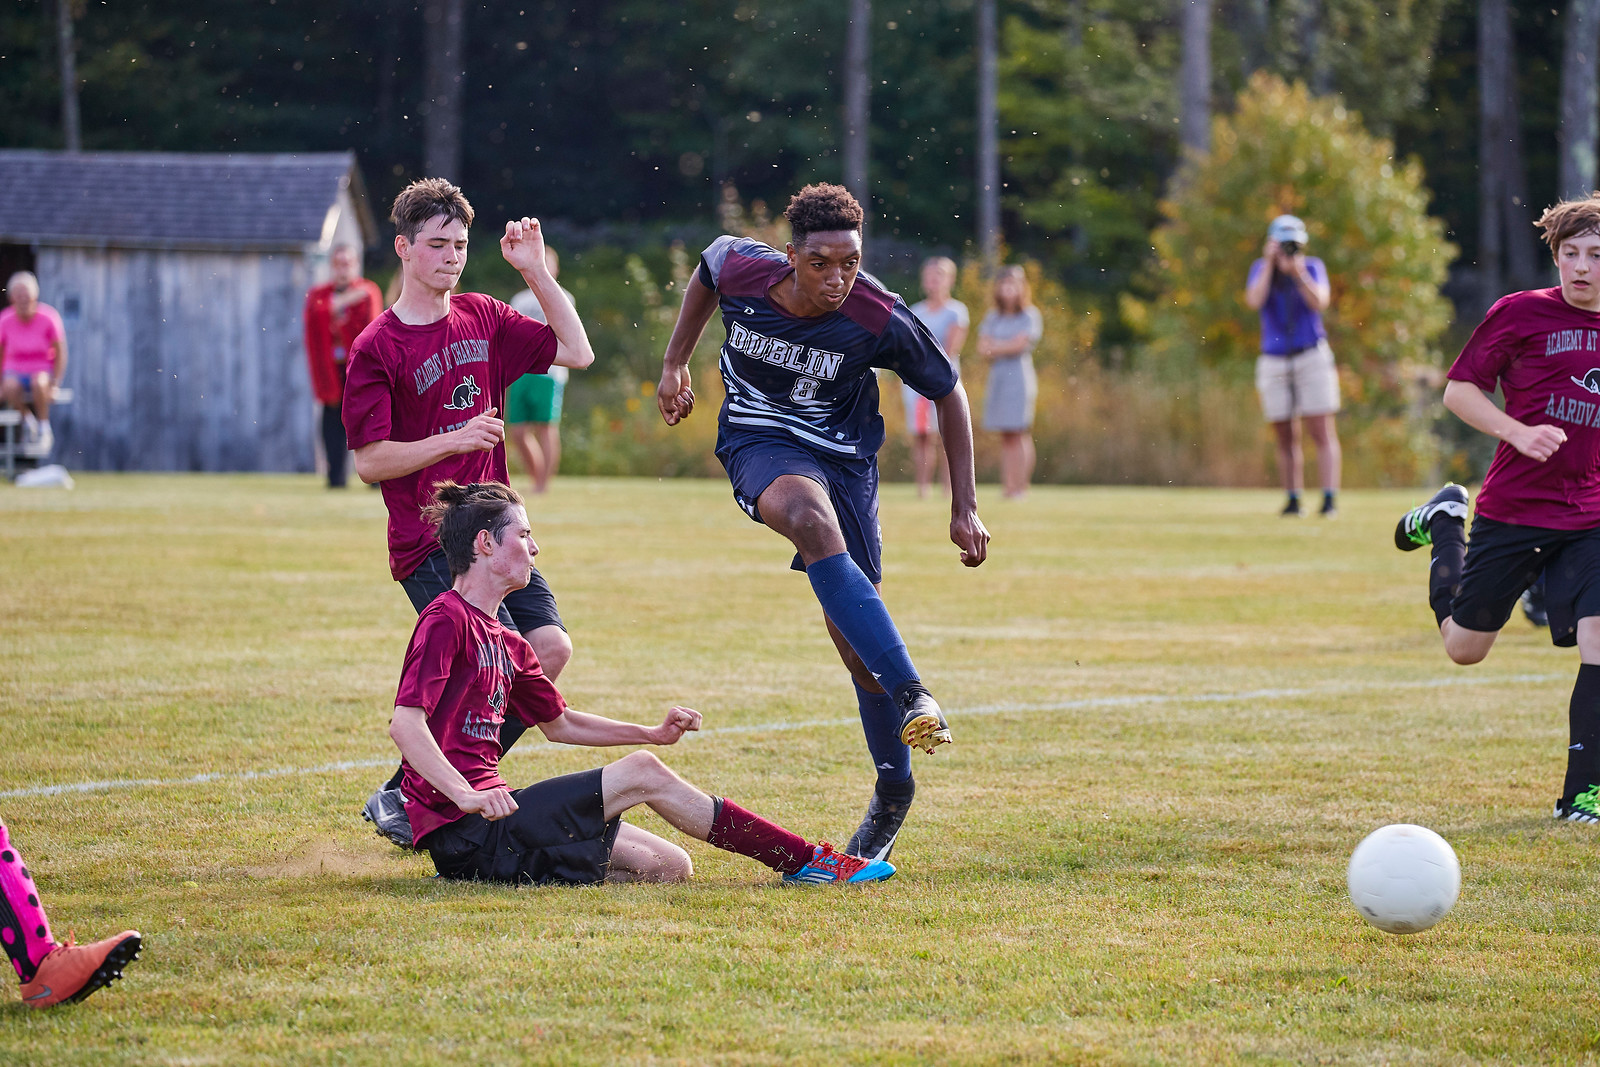 Fab has been a dominant soccer player at Dublin.